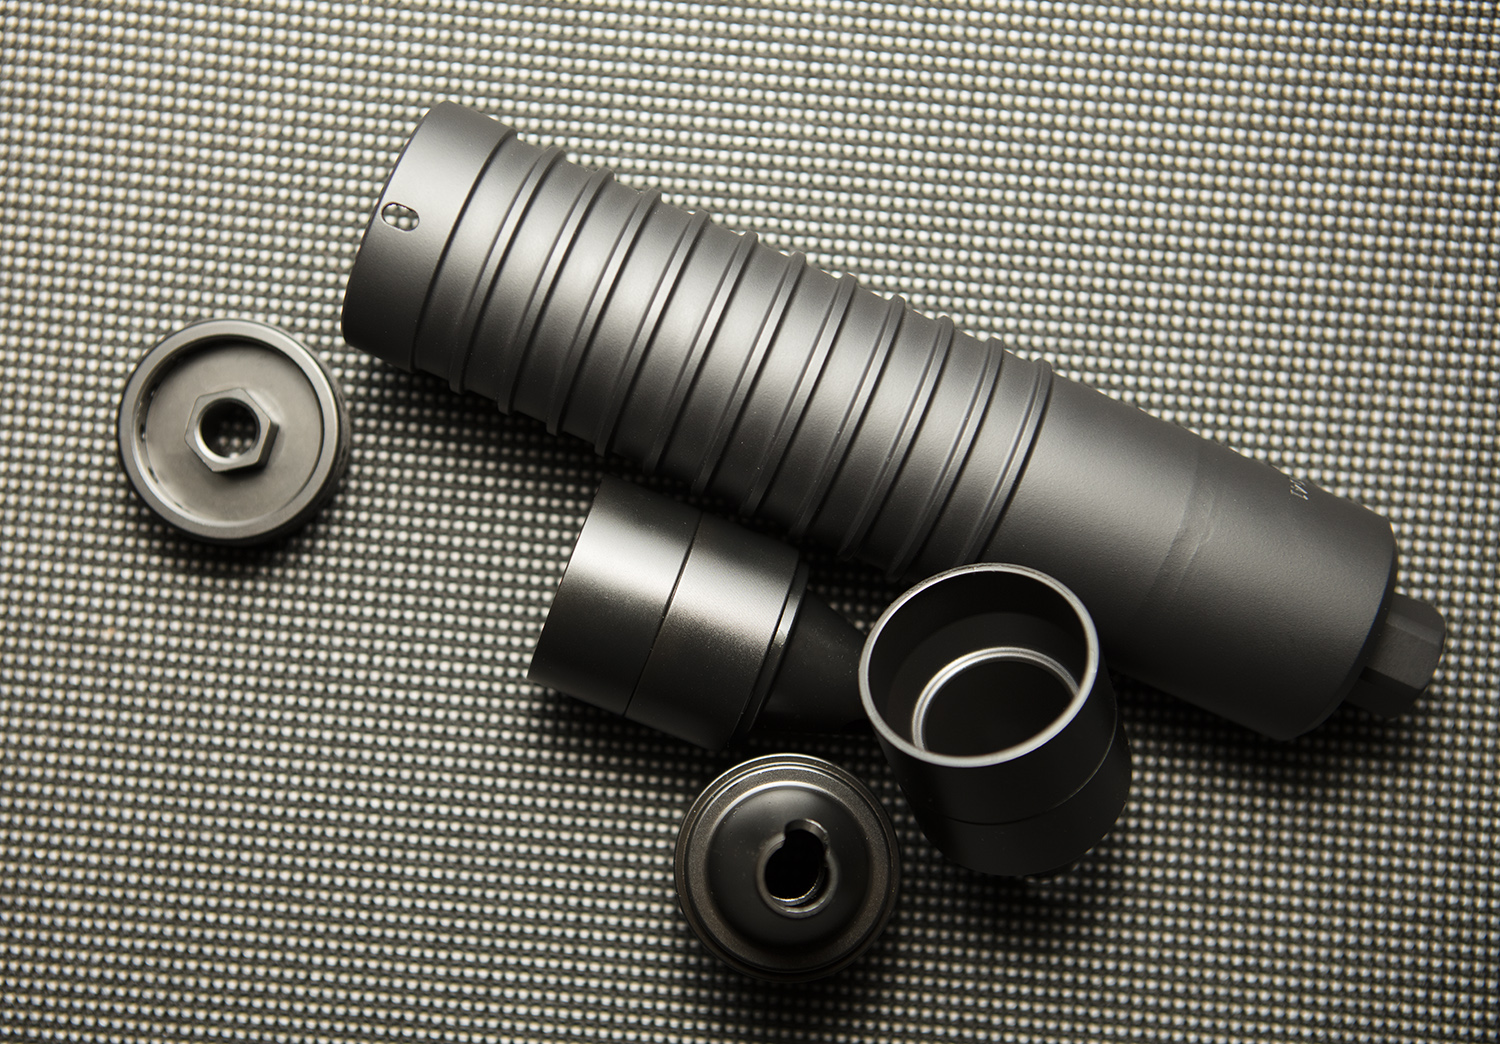 Thunder Beast Arms Takedow Suppressor: Much Quiet for Little Money